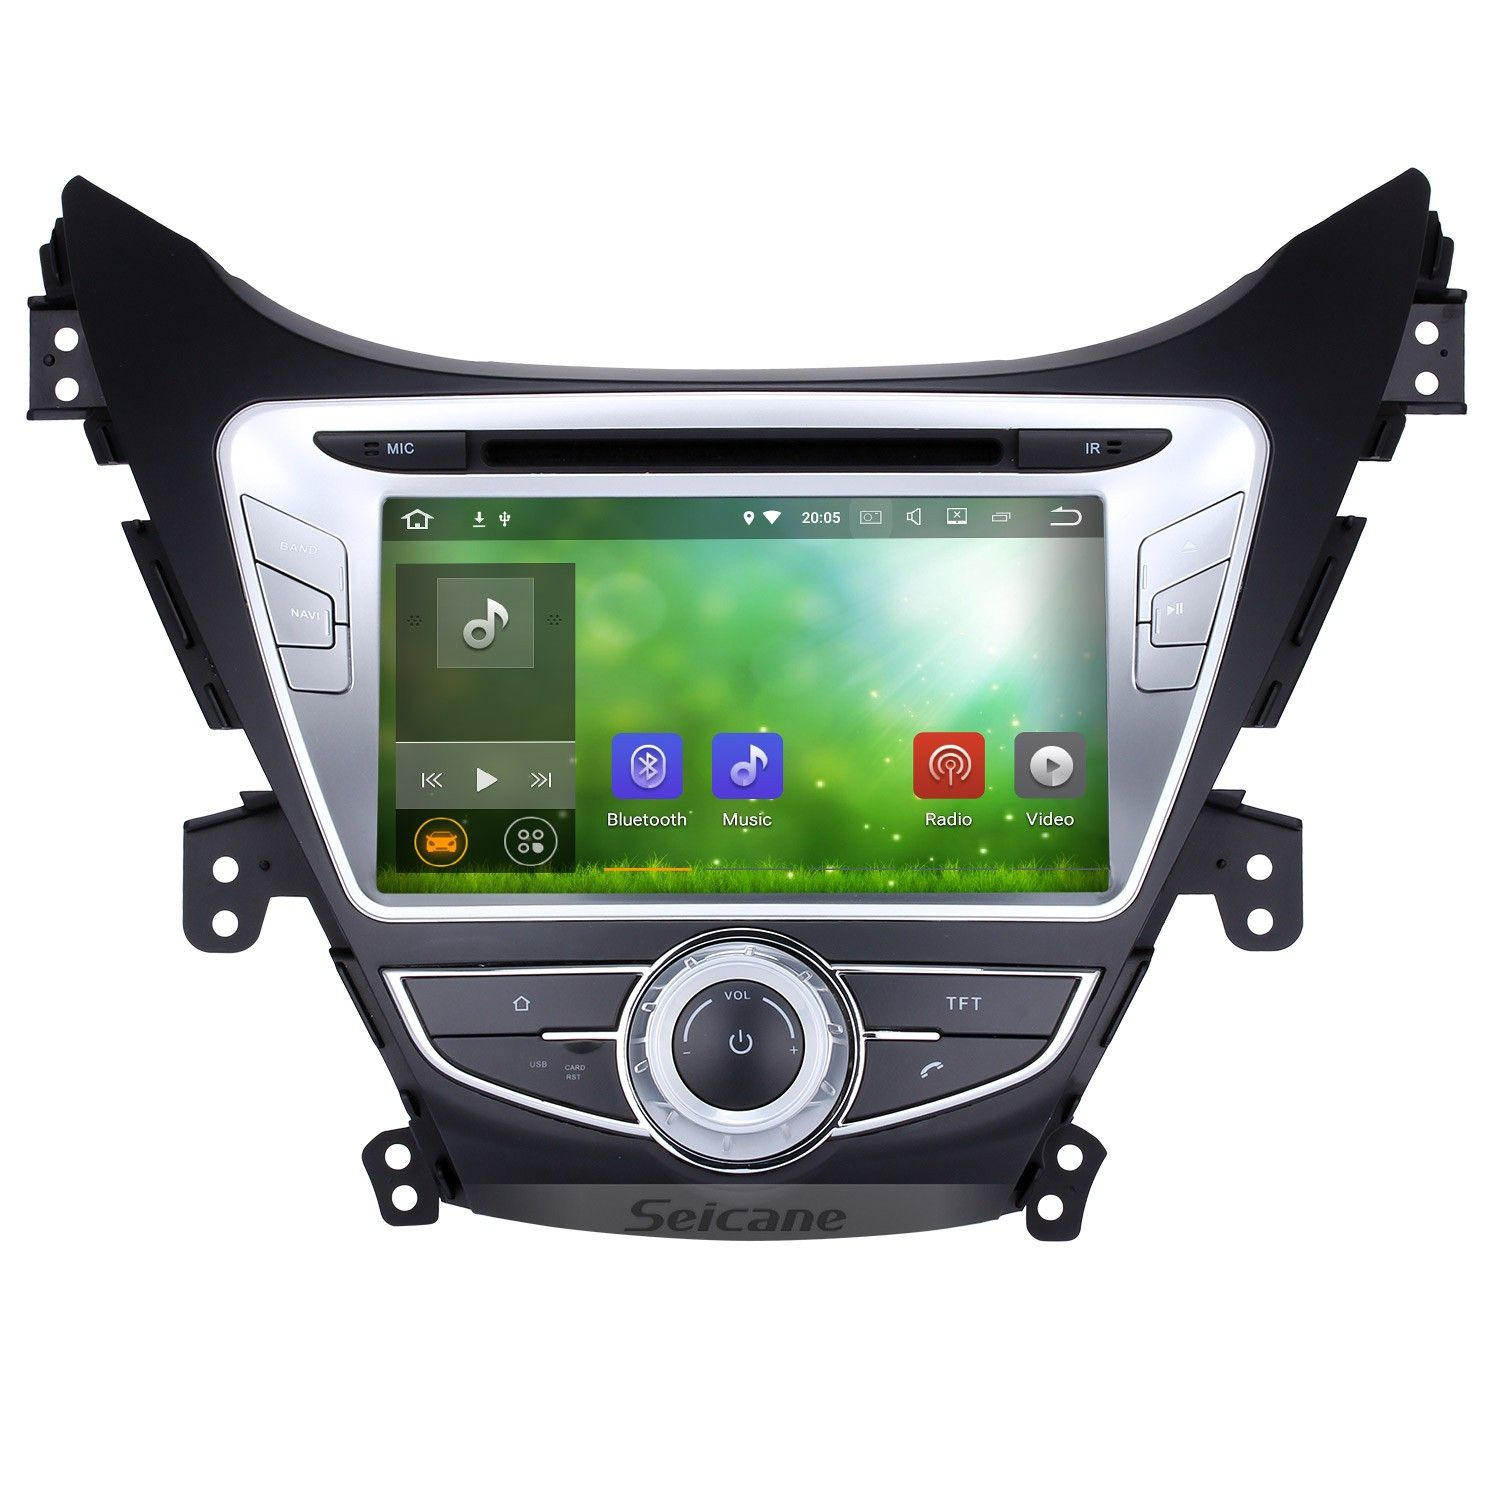 9 Inch Android 10 0 Hd Touch Screen Radio For 2014 2015 Hyundai Elantra With Gps Navigation System Bluetooth Usb Wifi Obd2 Tpms Mirror Link Rearview Camera Gps Navigation Gps Navigation System Gps